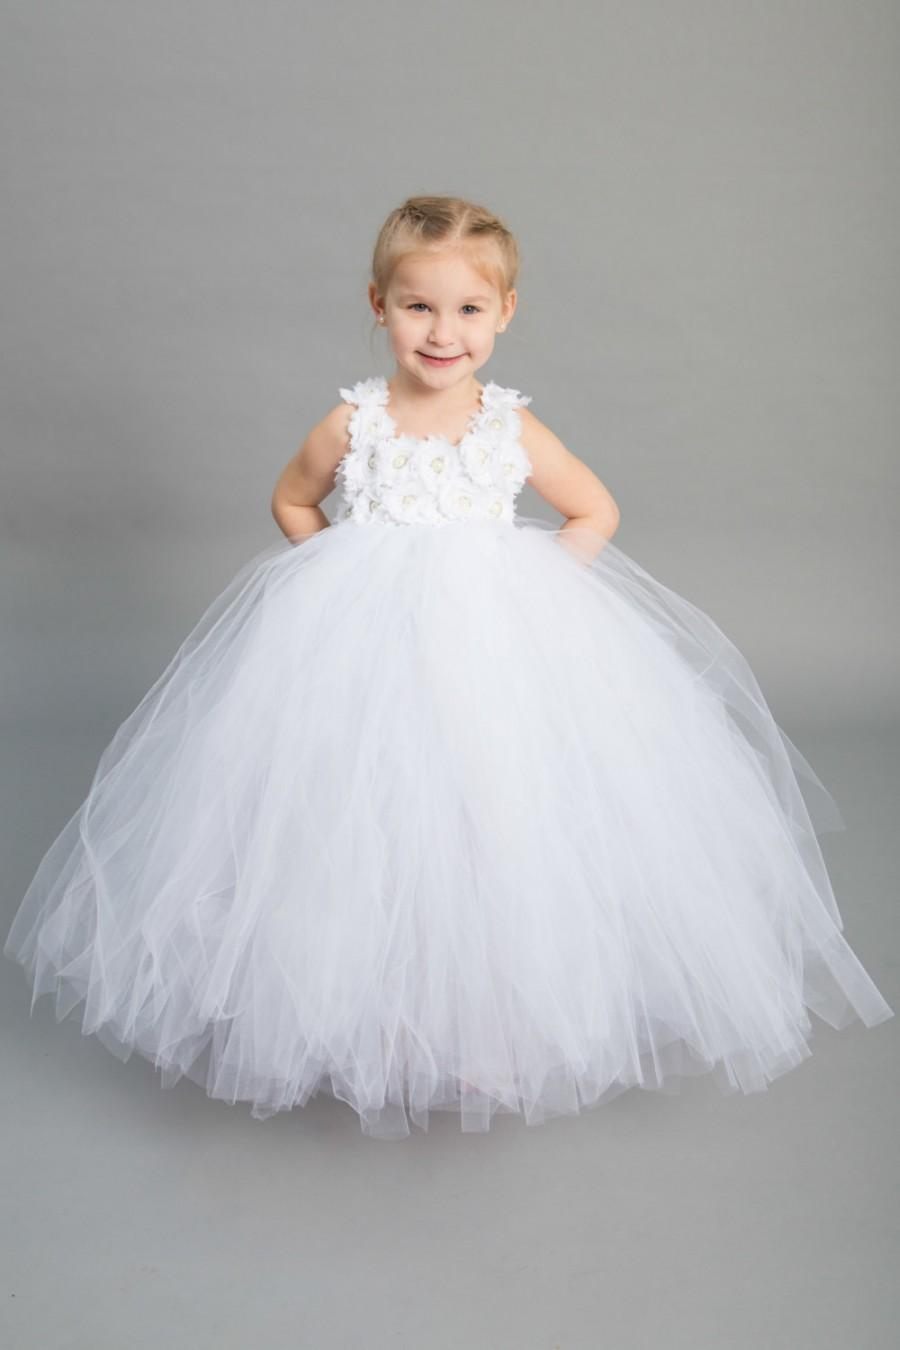 19c5d56a659 Flower girl dress - Tulle flower girl dress - White Dress - Tulle dress- Infant Toddler - Pageant dress - Princess dress - White flower dress